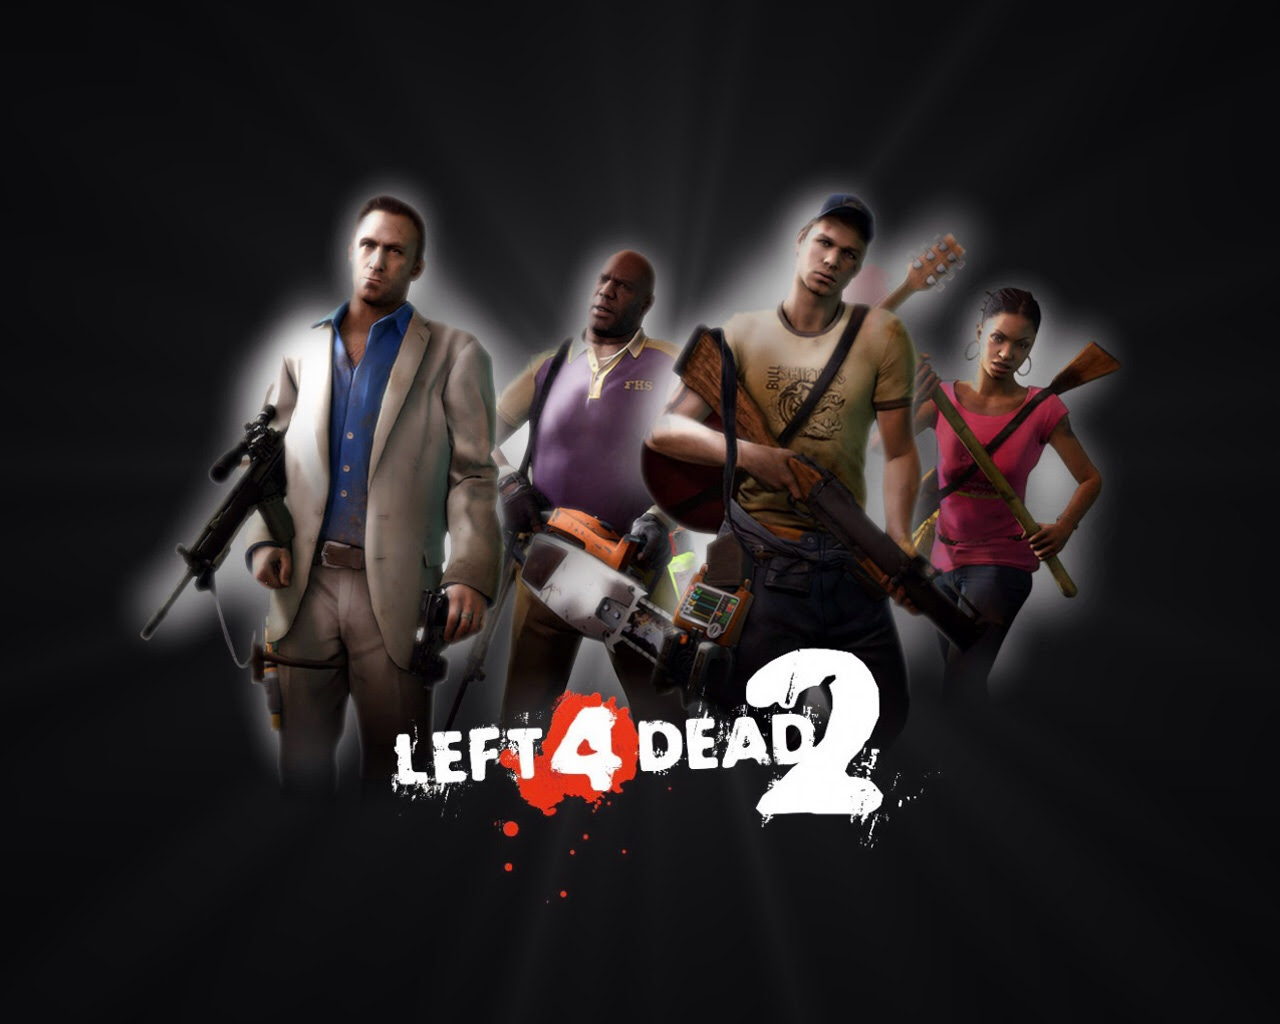 The Survivors Left 4 Dead 2 Wallpaper 38634764 Fanpop